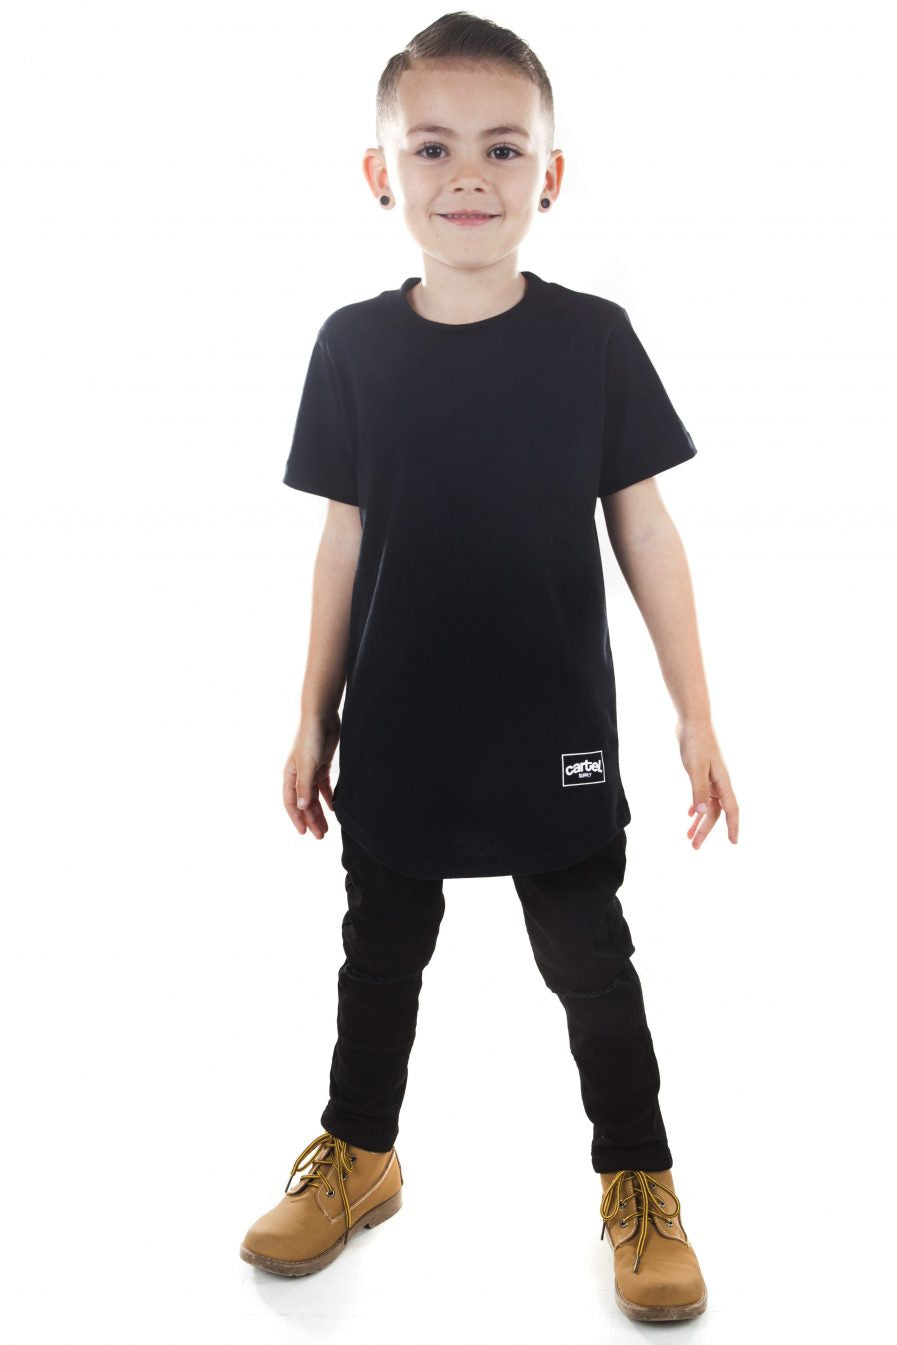 Kids 'Coro' Tee - Black - CartelStoreOfficial